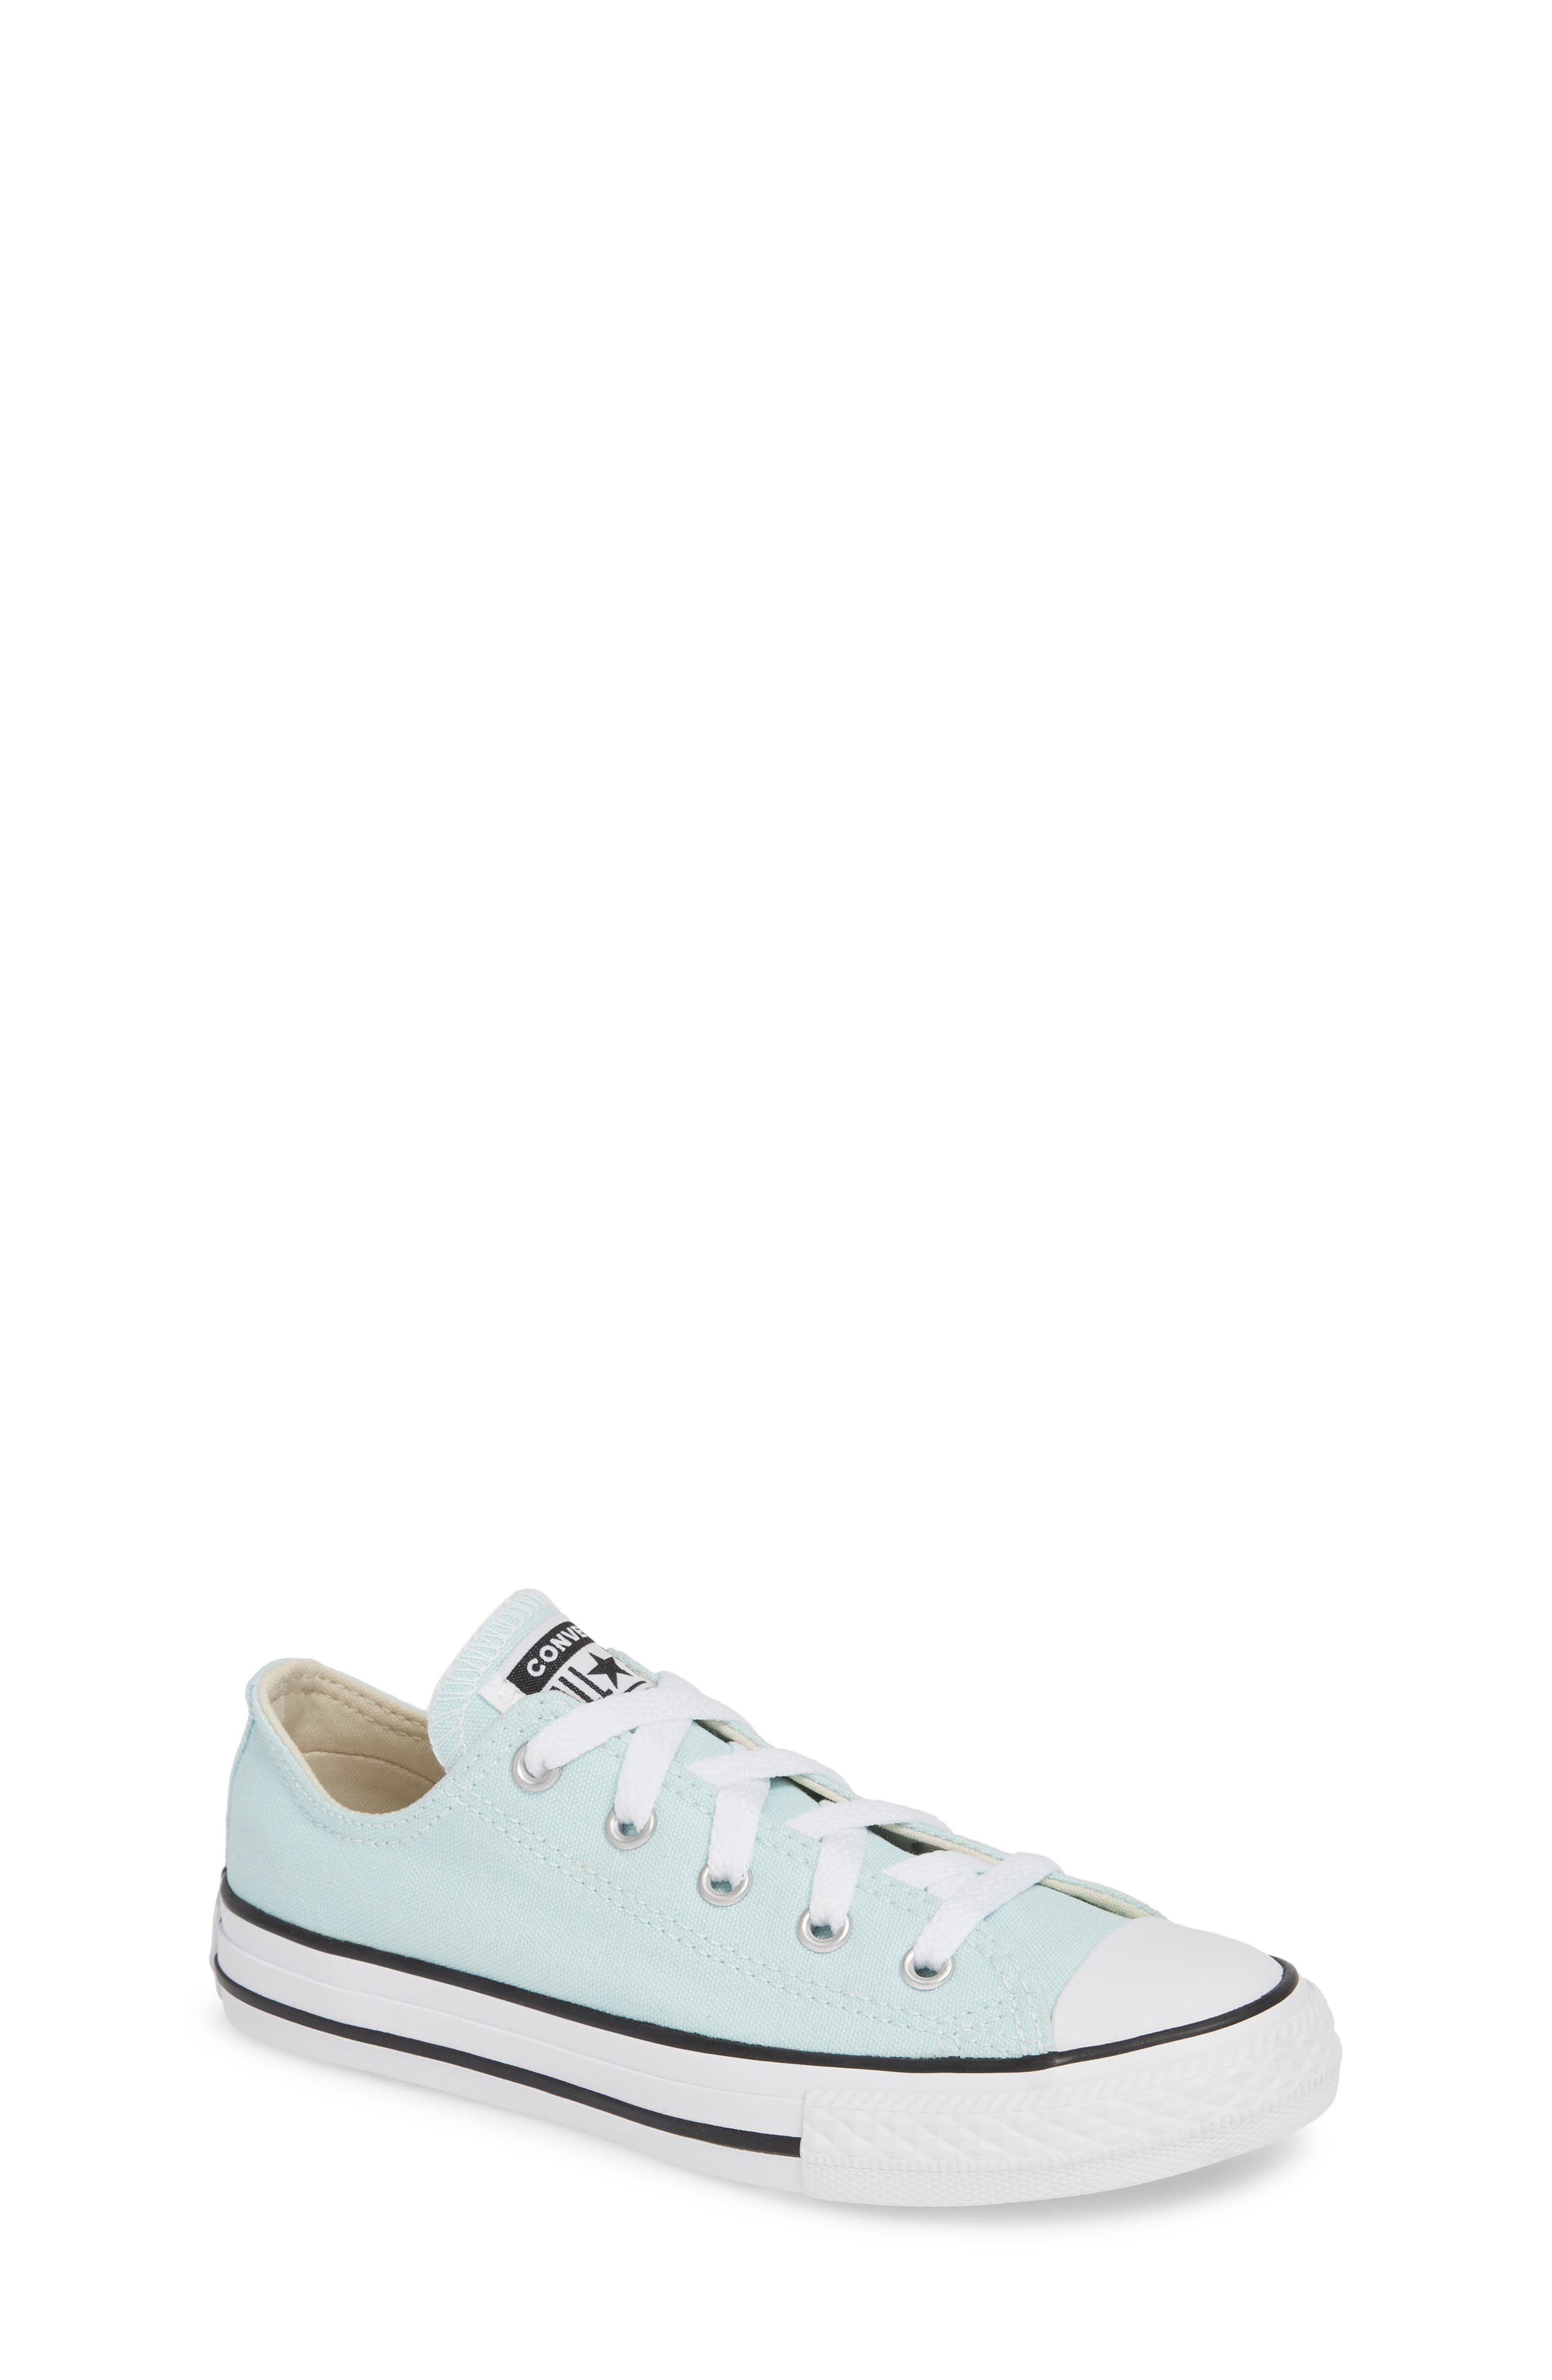 CONVERSE Chuck Taylor<sup>®</sup> Sneaker, Main, color, TEAL TINT/ IVORY/ WHITE